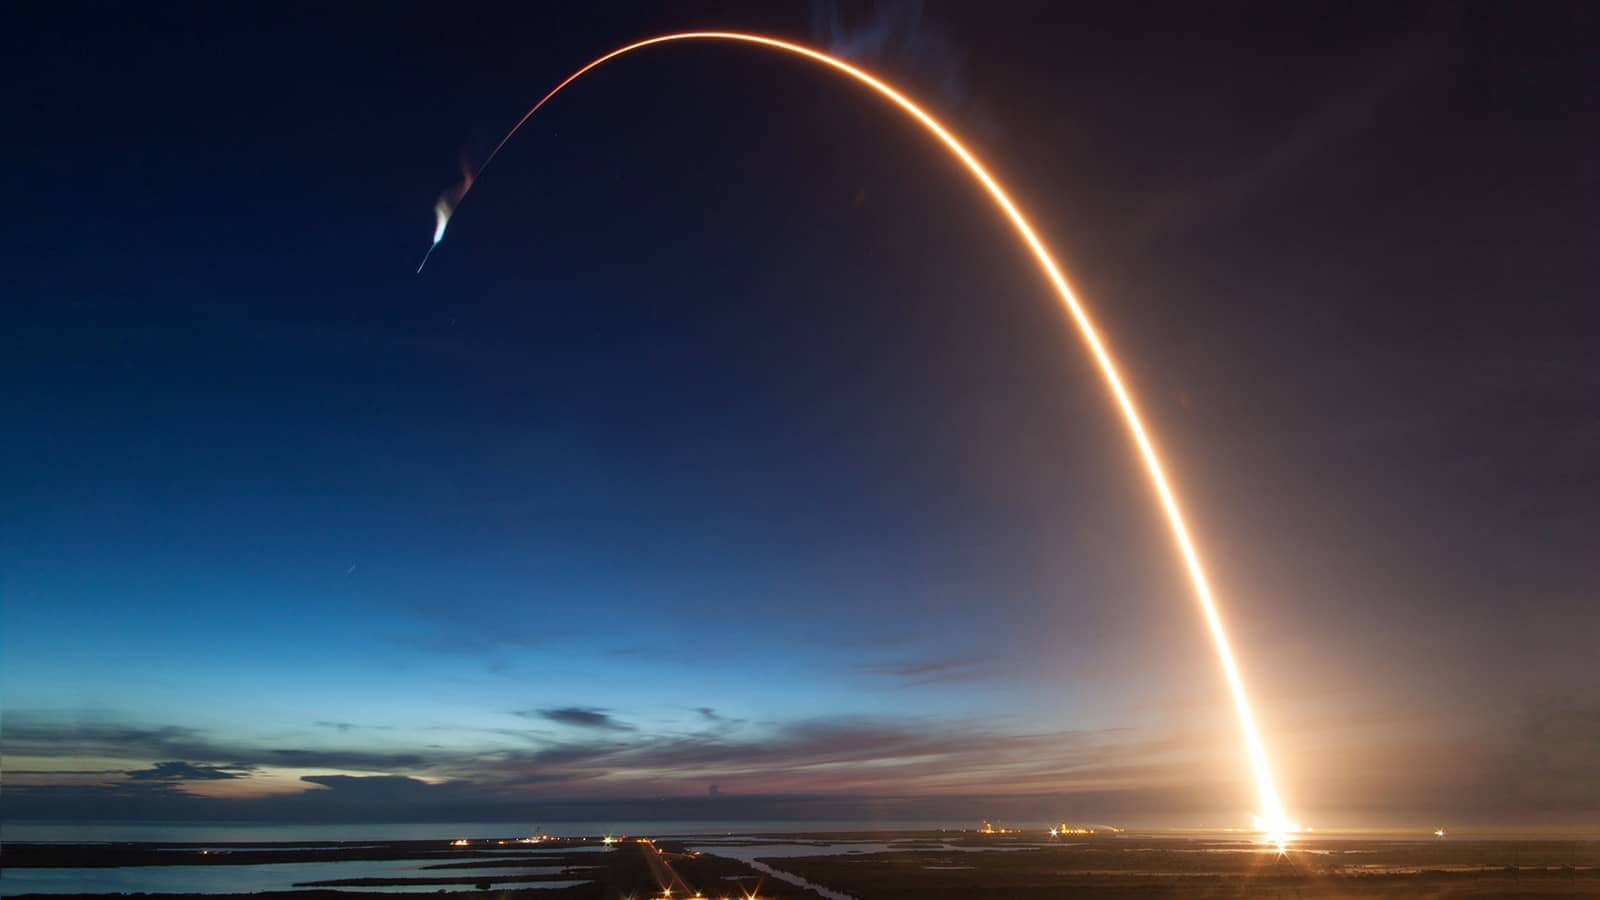 spacex spaceElectric2